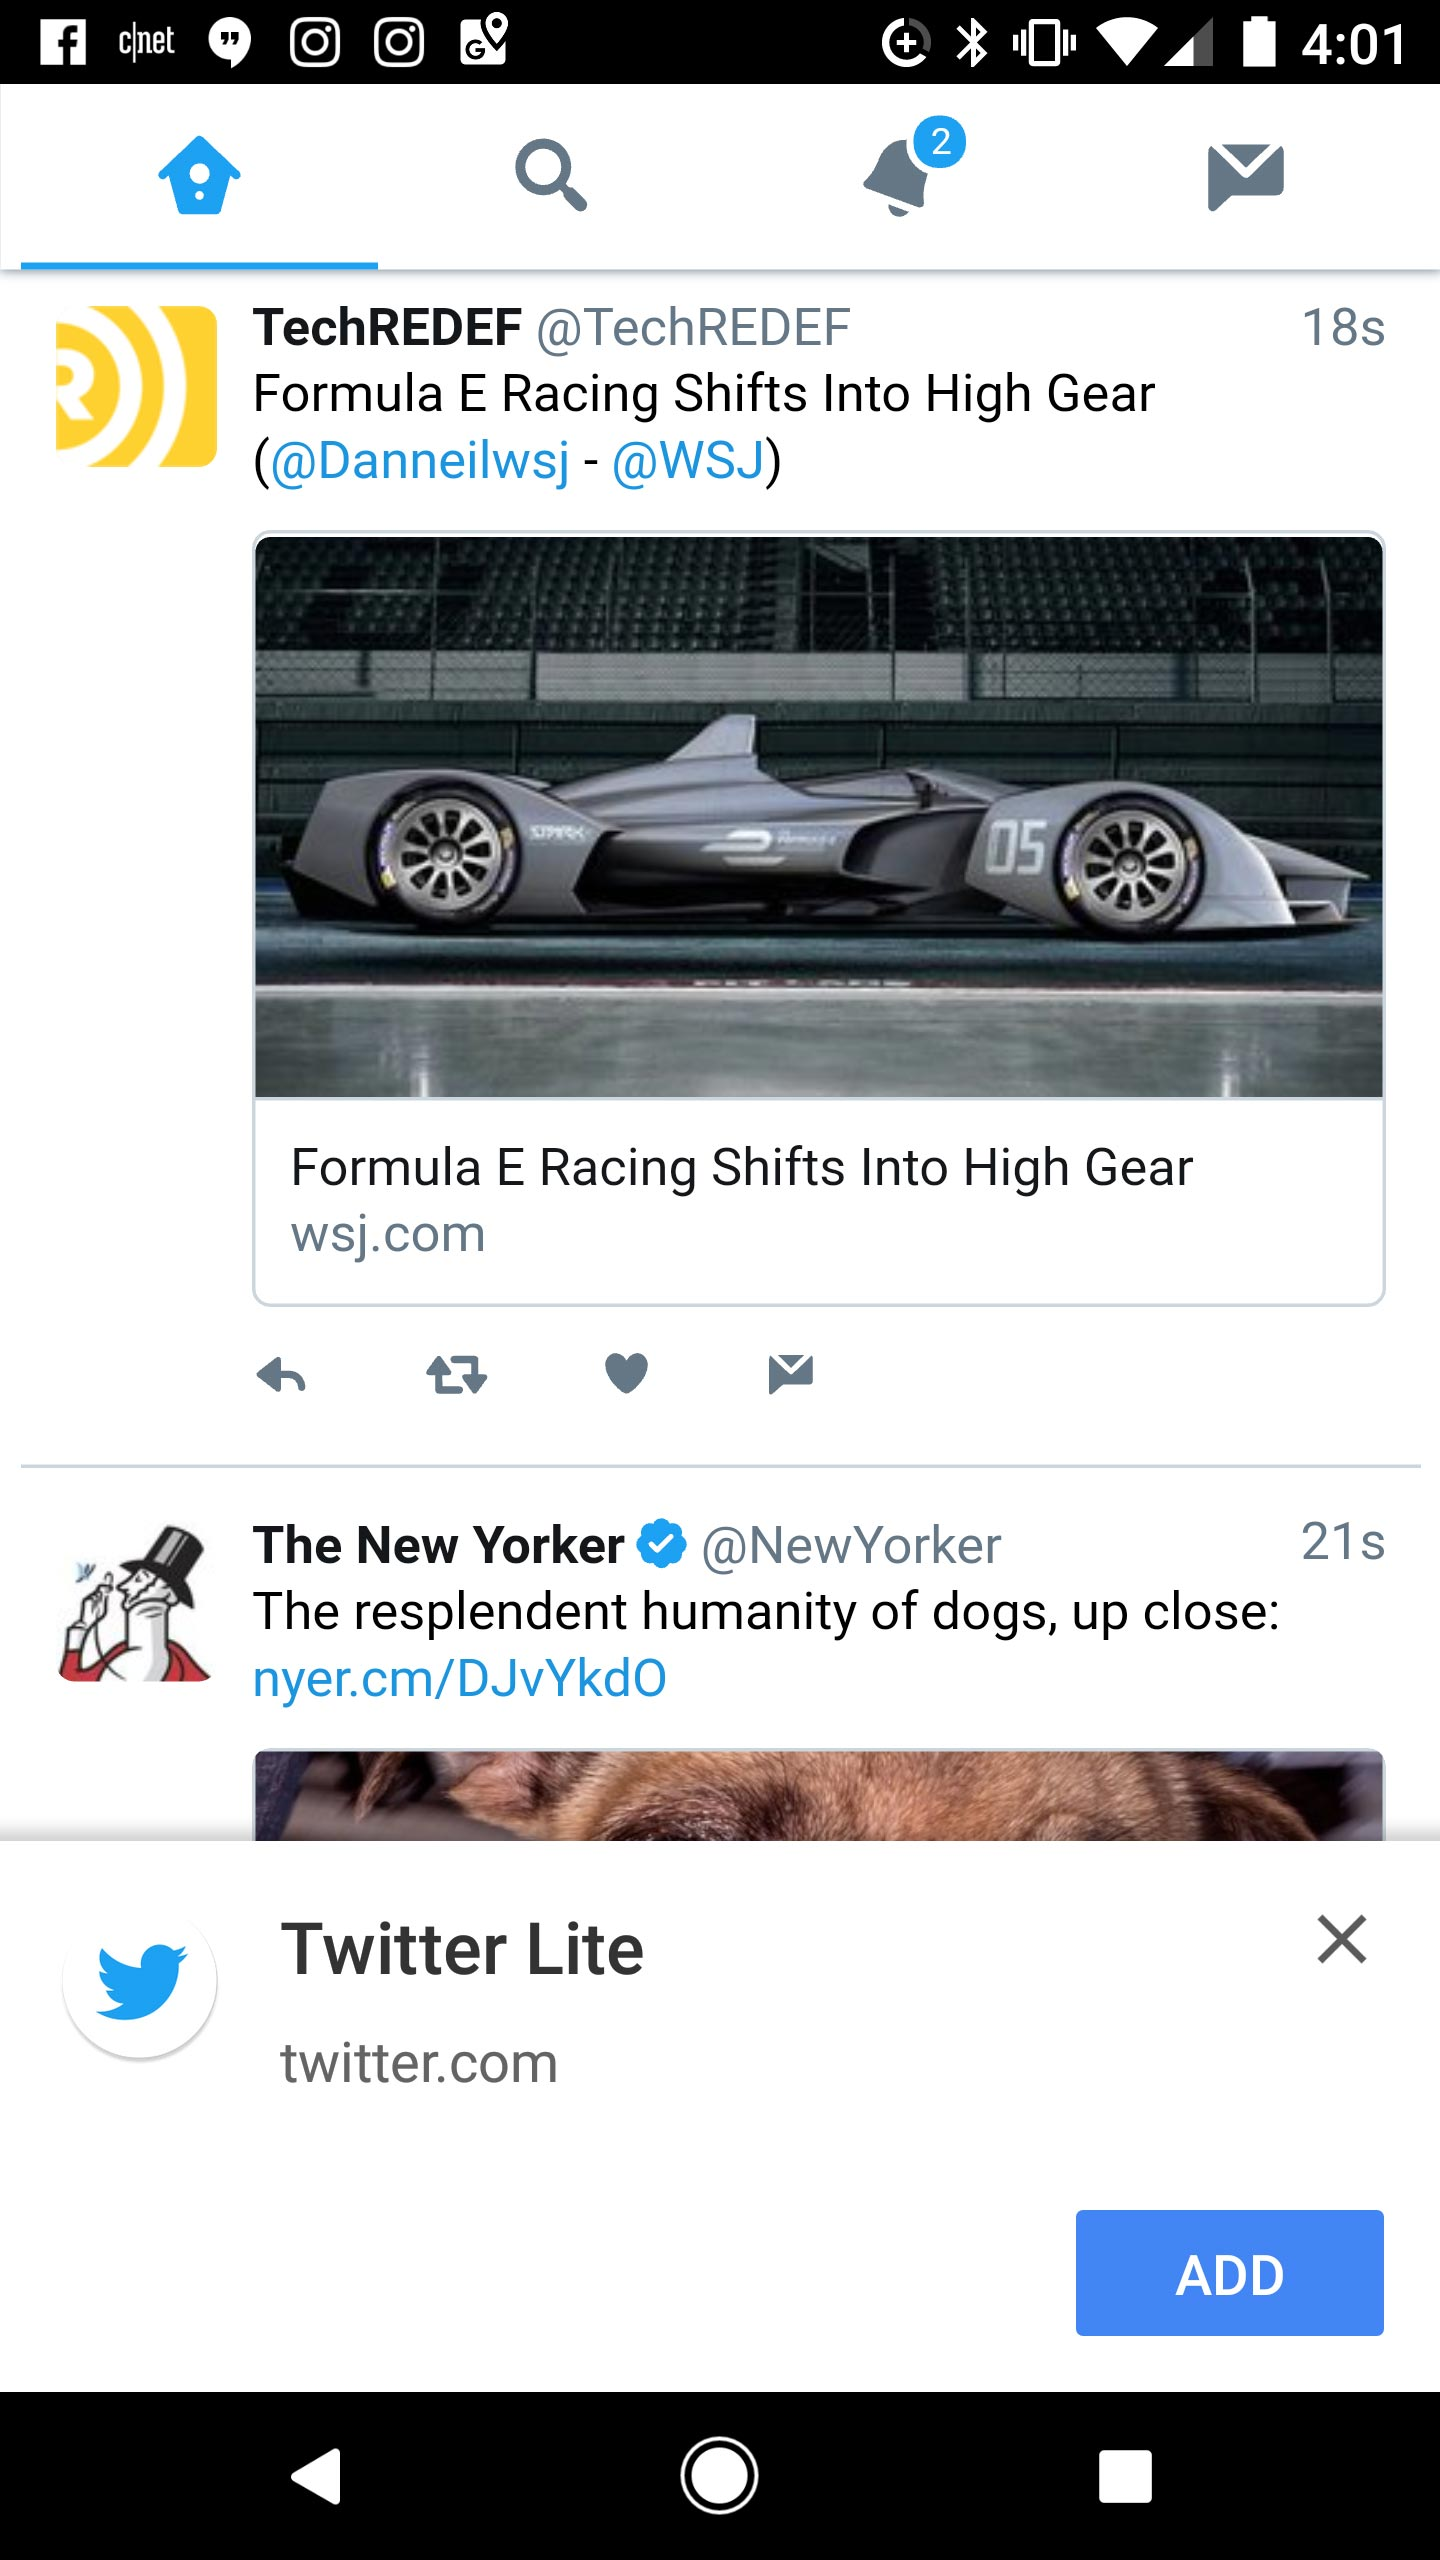 Twitter Lite looks similar to the native Twitter app. On Android, it asks if you want to add its icon to your home screen, a move that downloads components for a richer experience and faster launch times.